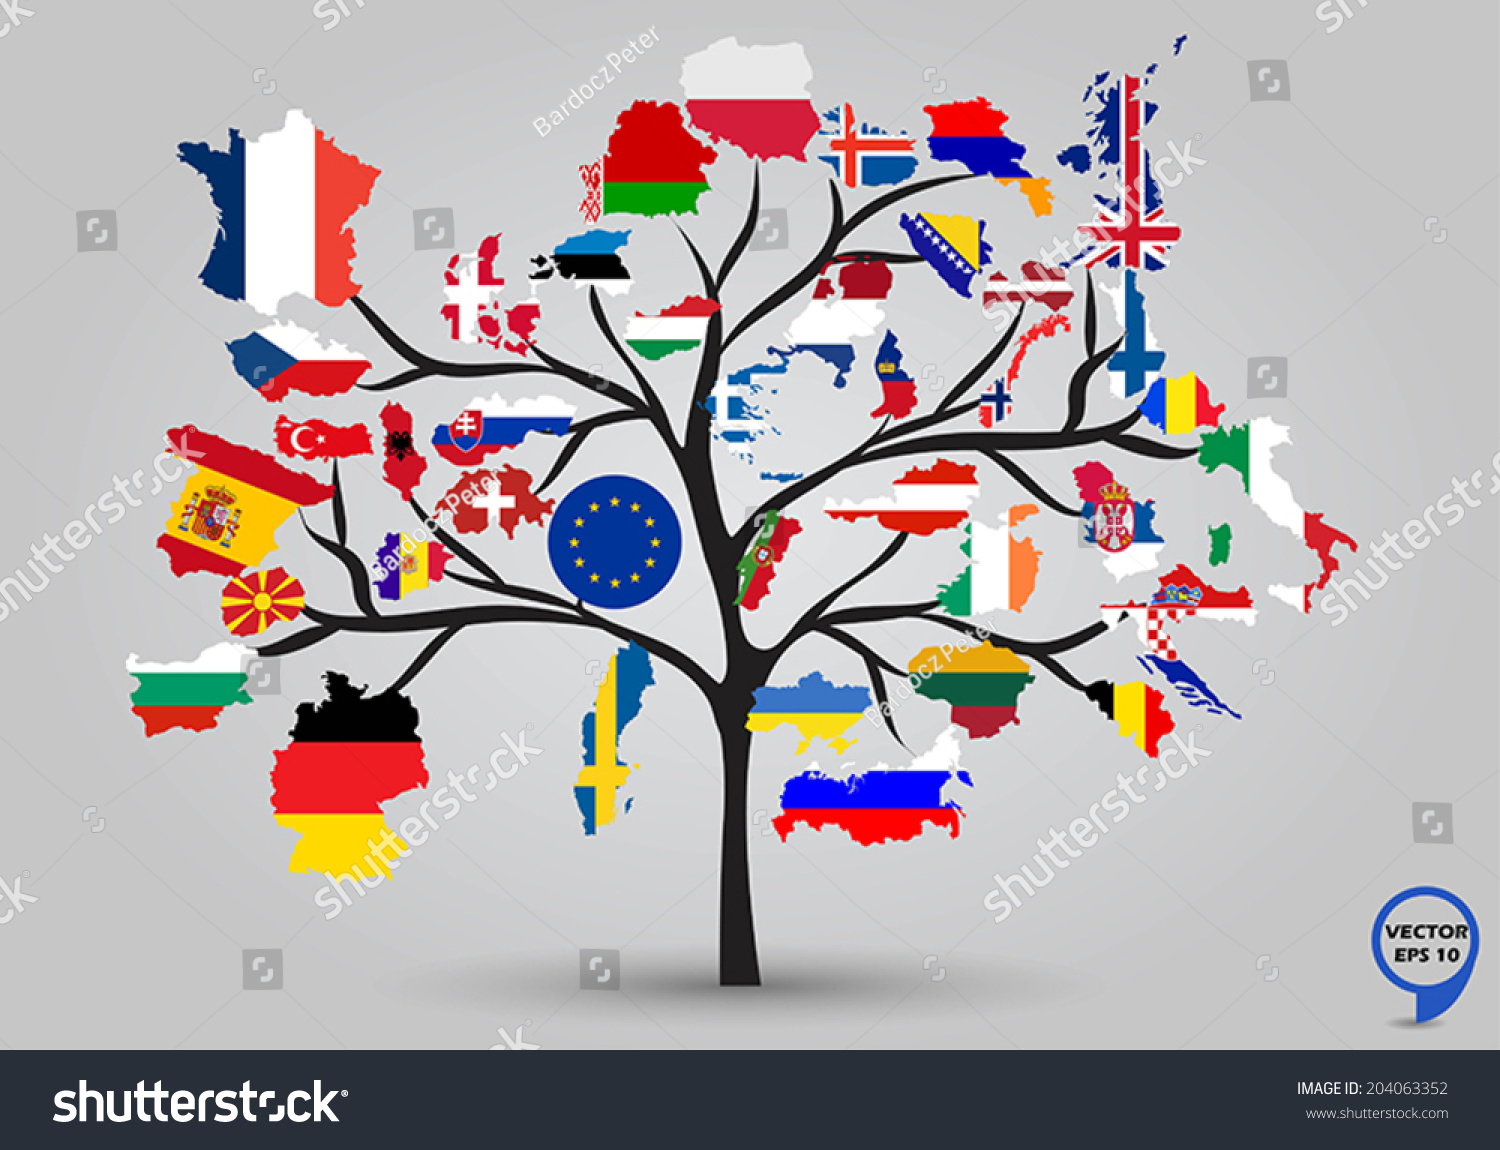 vector illustration of europe - photo #47